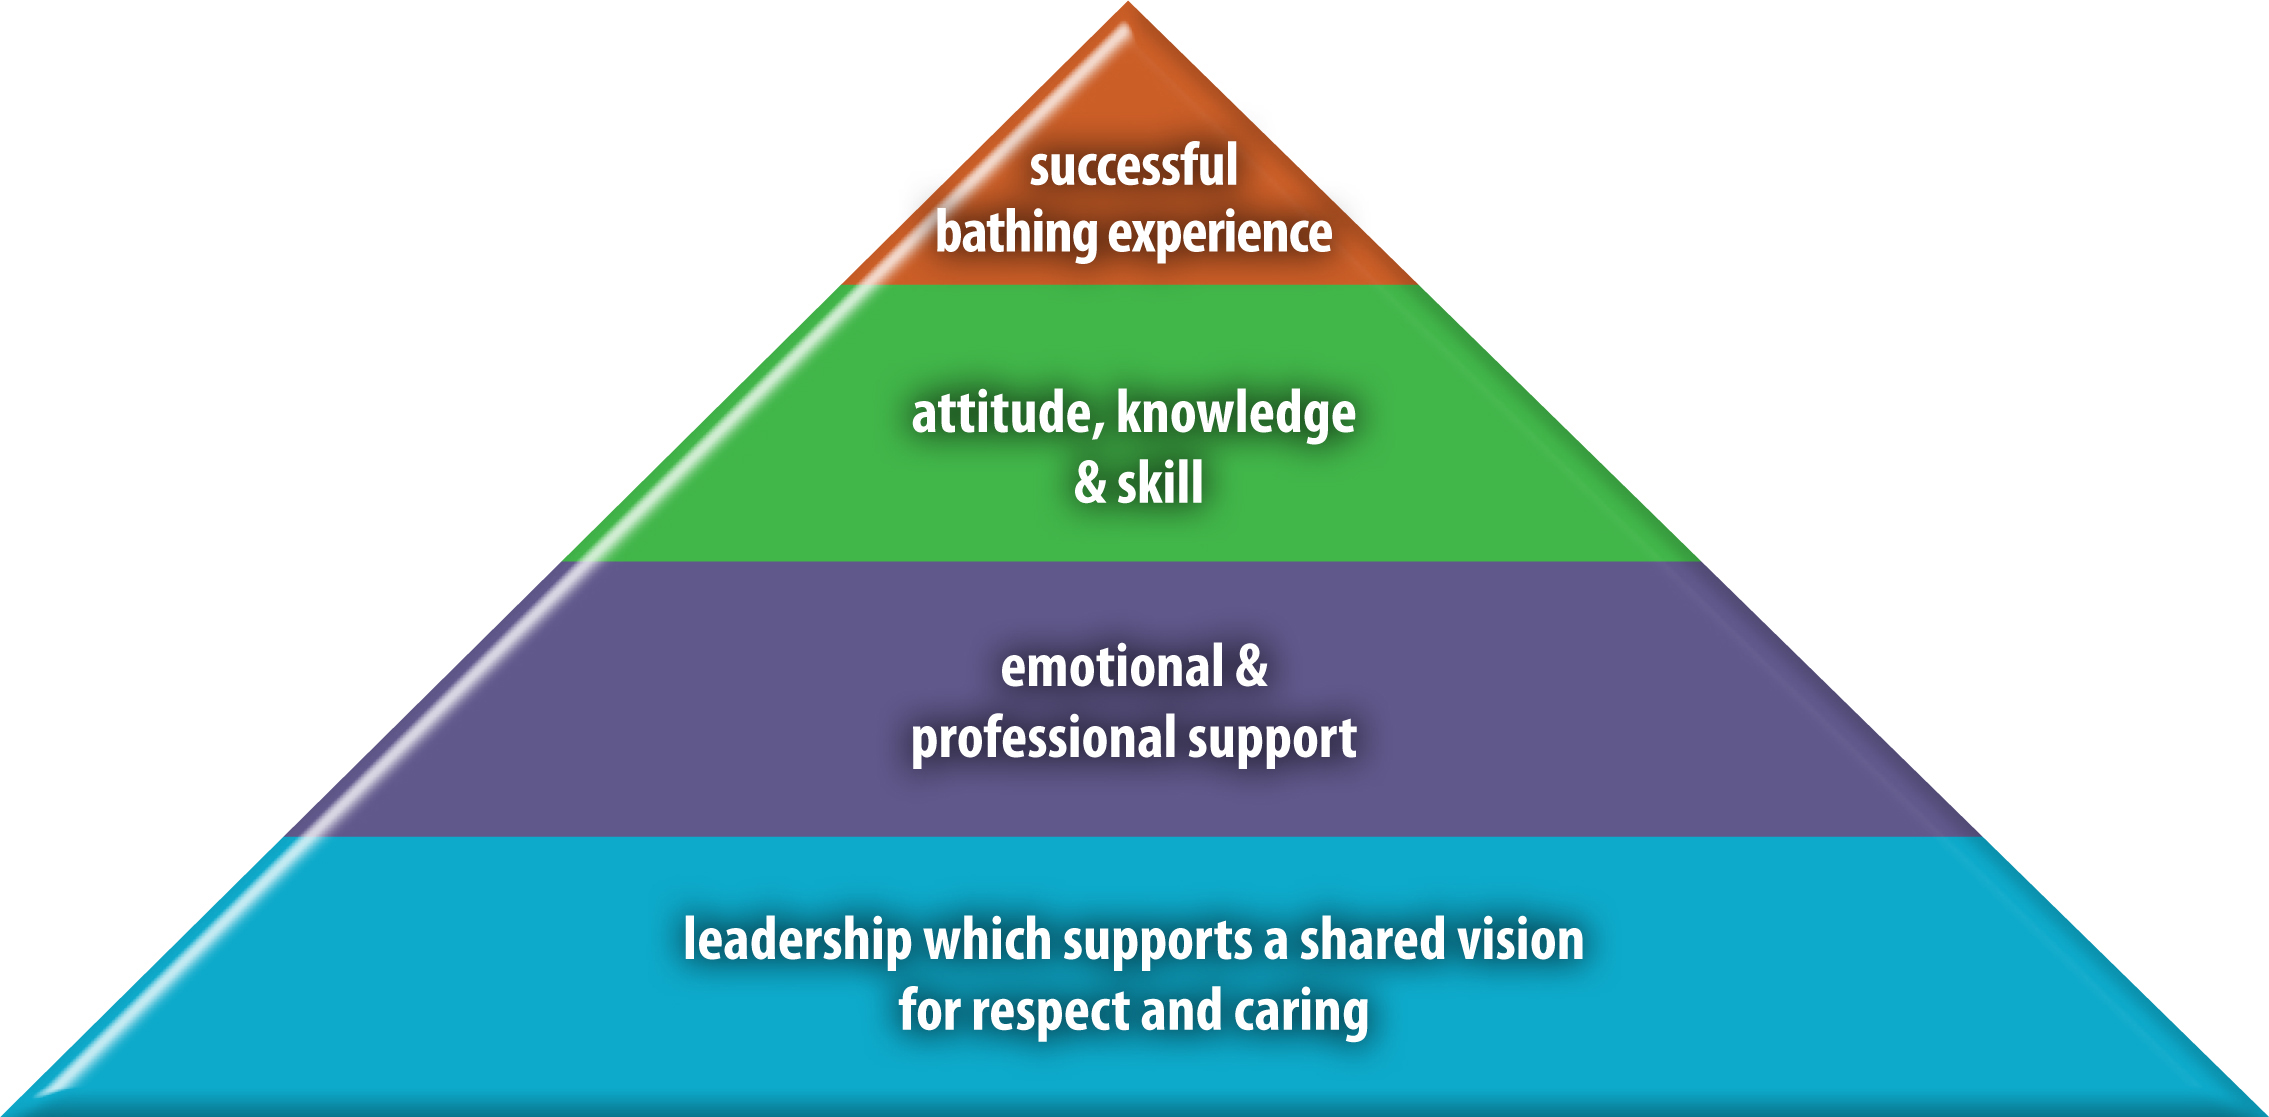 Framework for successful bathing experiences for people with dementia and health care assistants.